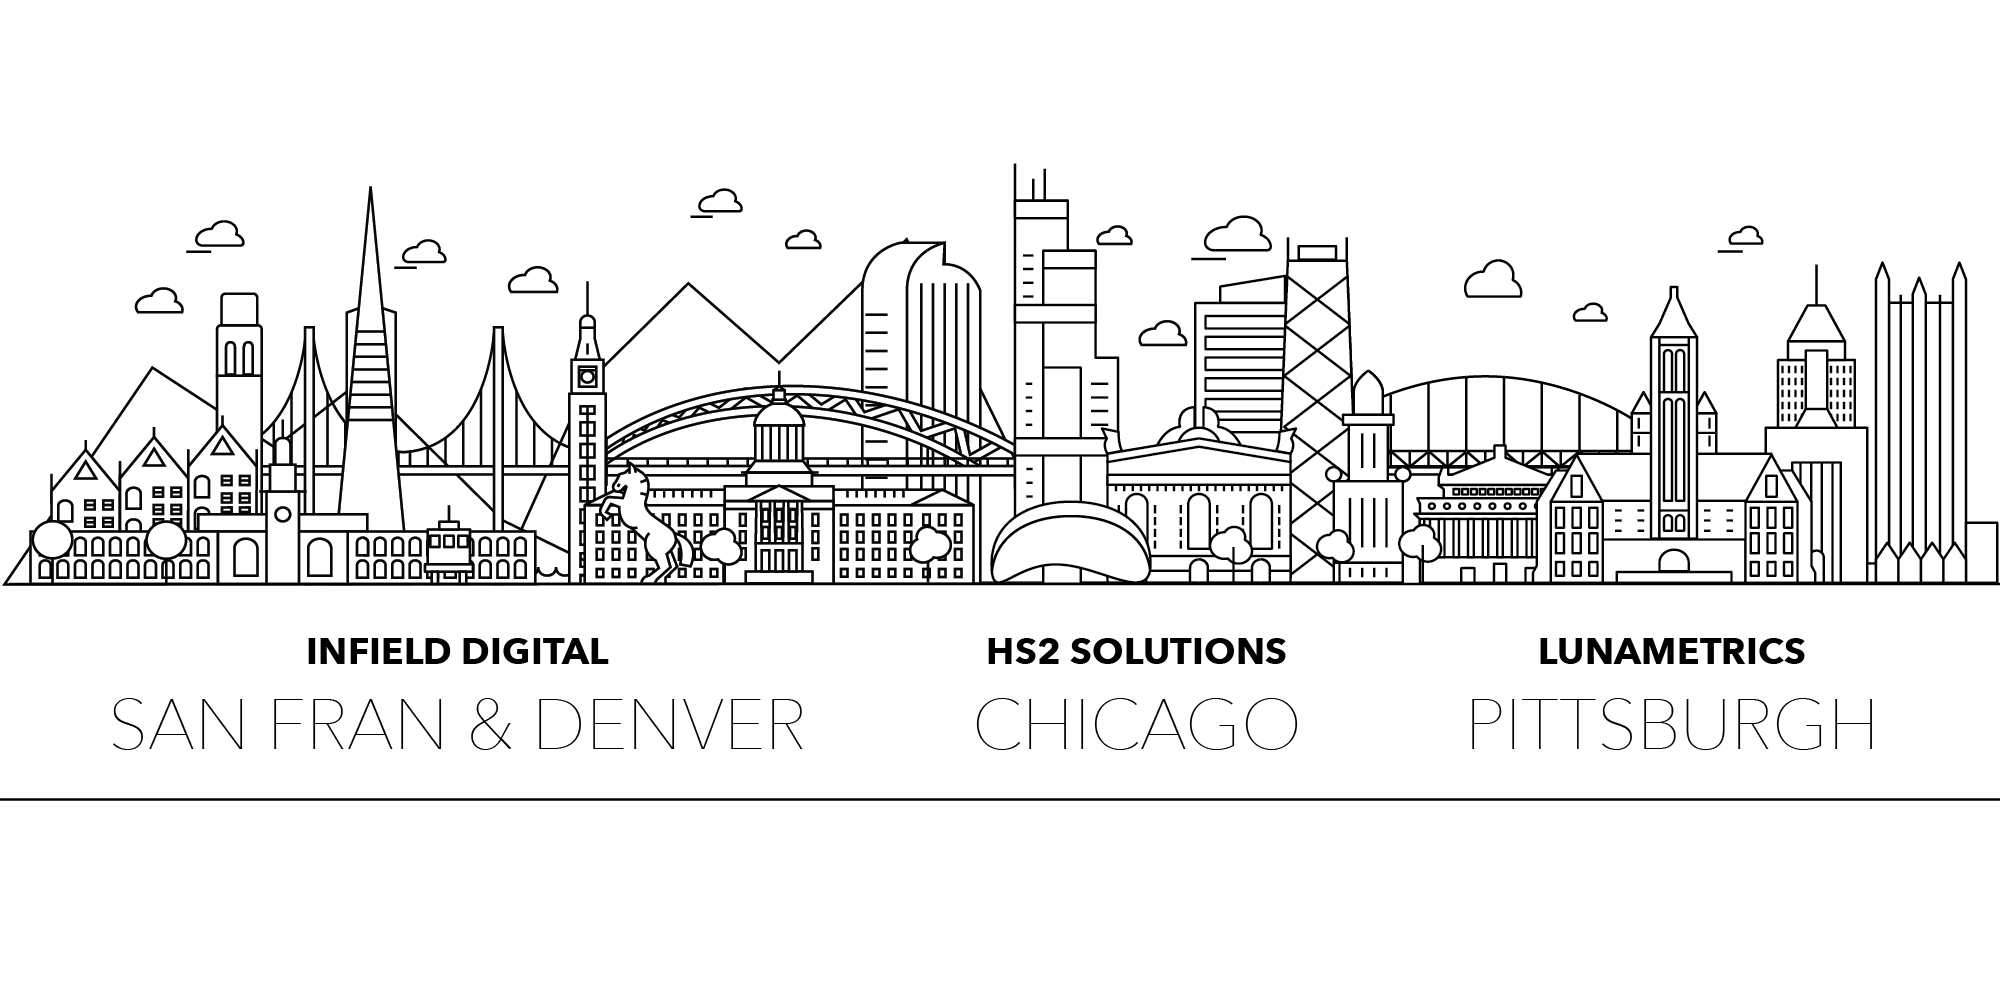 Press Release: HS2 Solutions Acquires Infield Digital